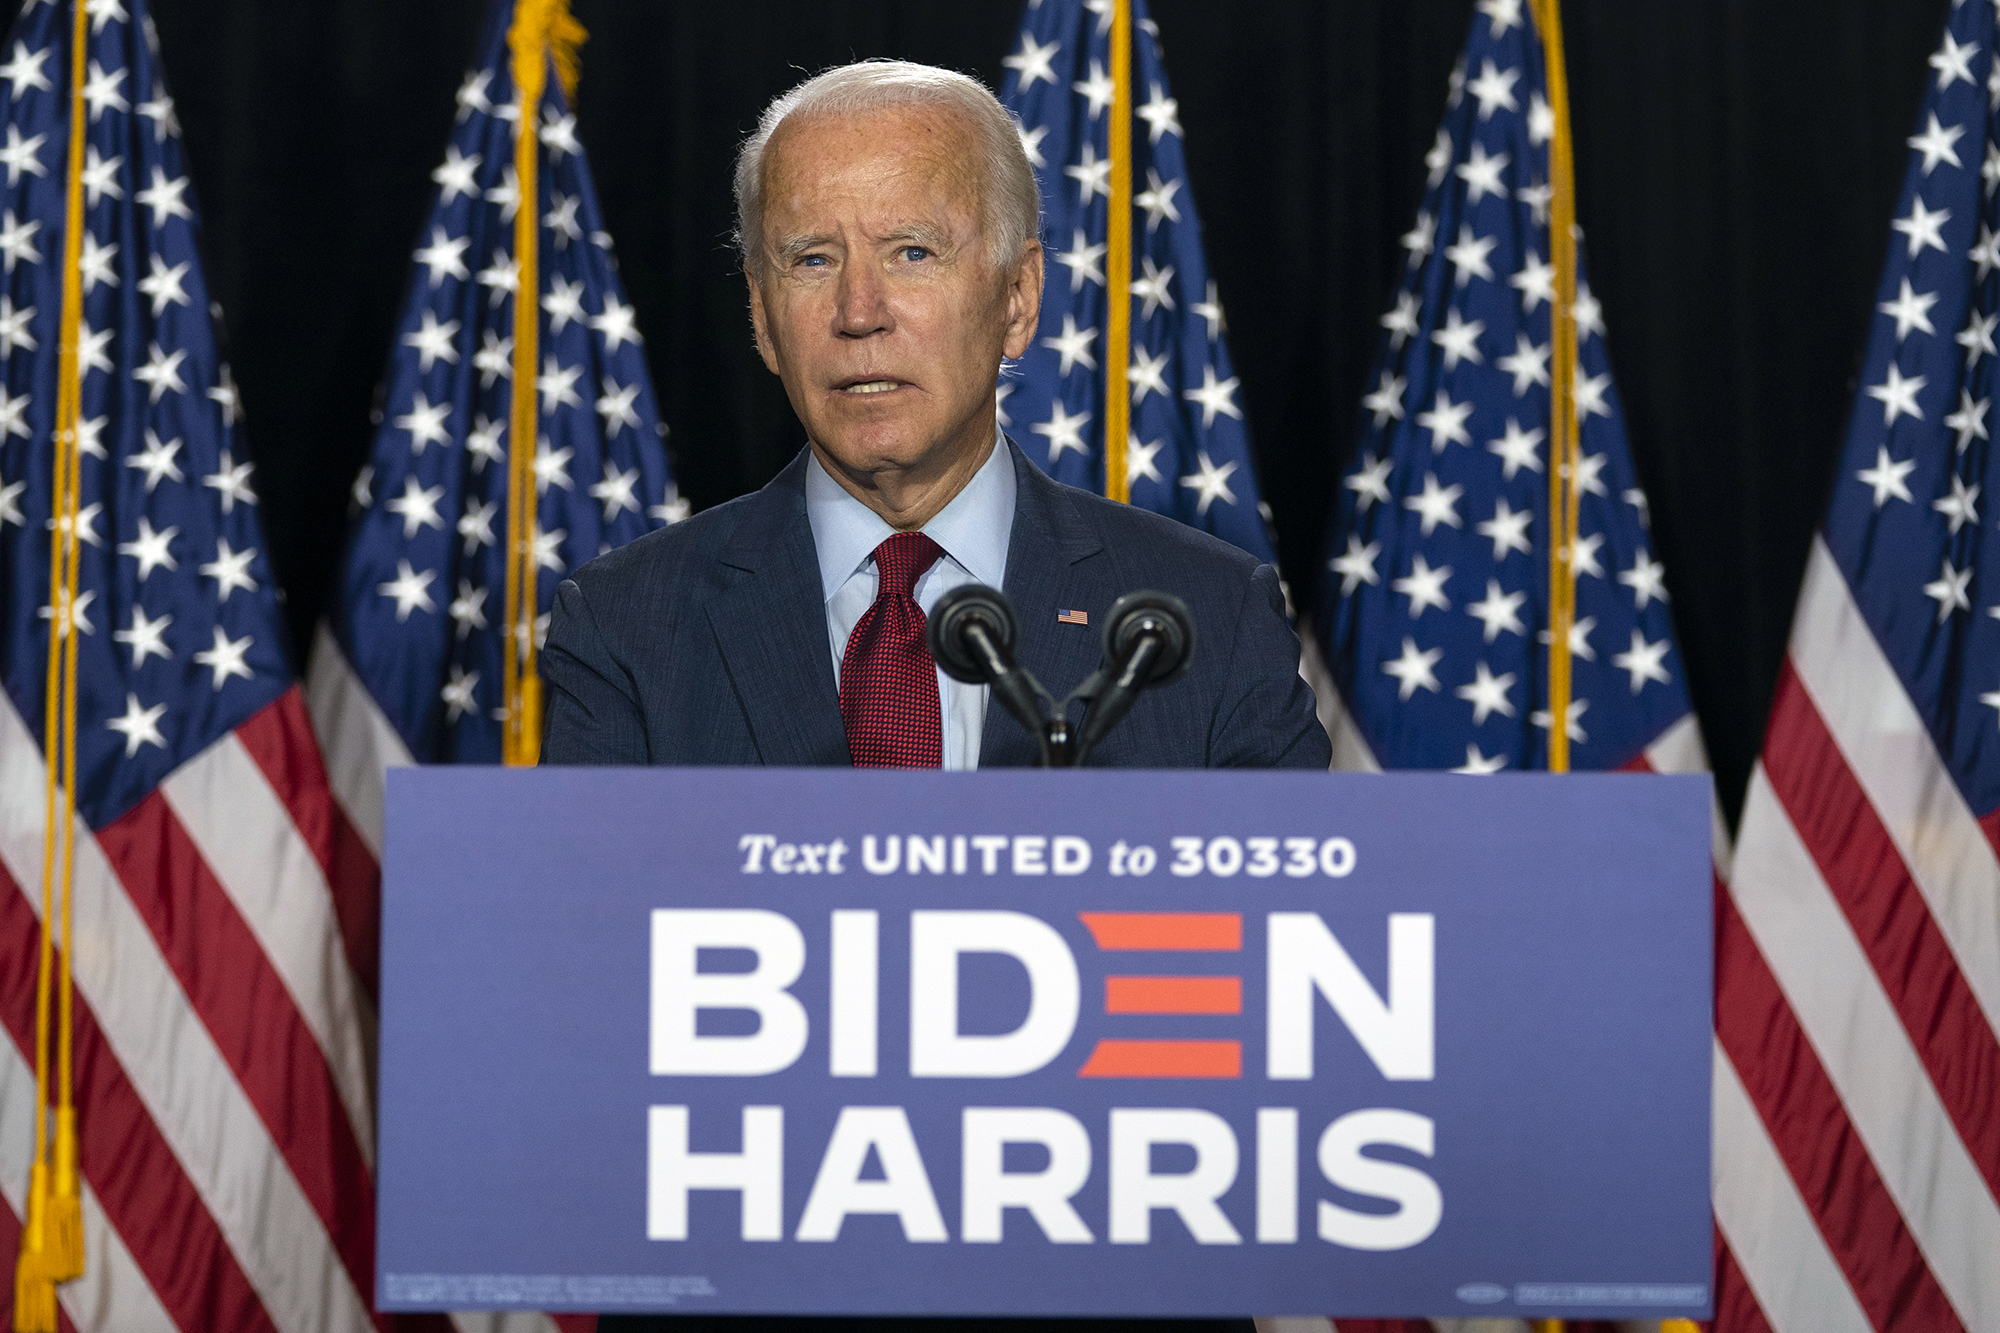 In this Aug. 13, 2020, file photo, Democratic presidential candidate former Vice President Joe Biden speaks during a news conference at the Hotel DuPont in Wilmington, Delaware.